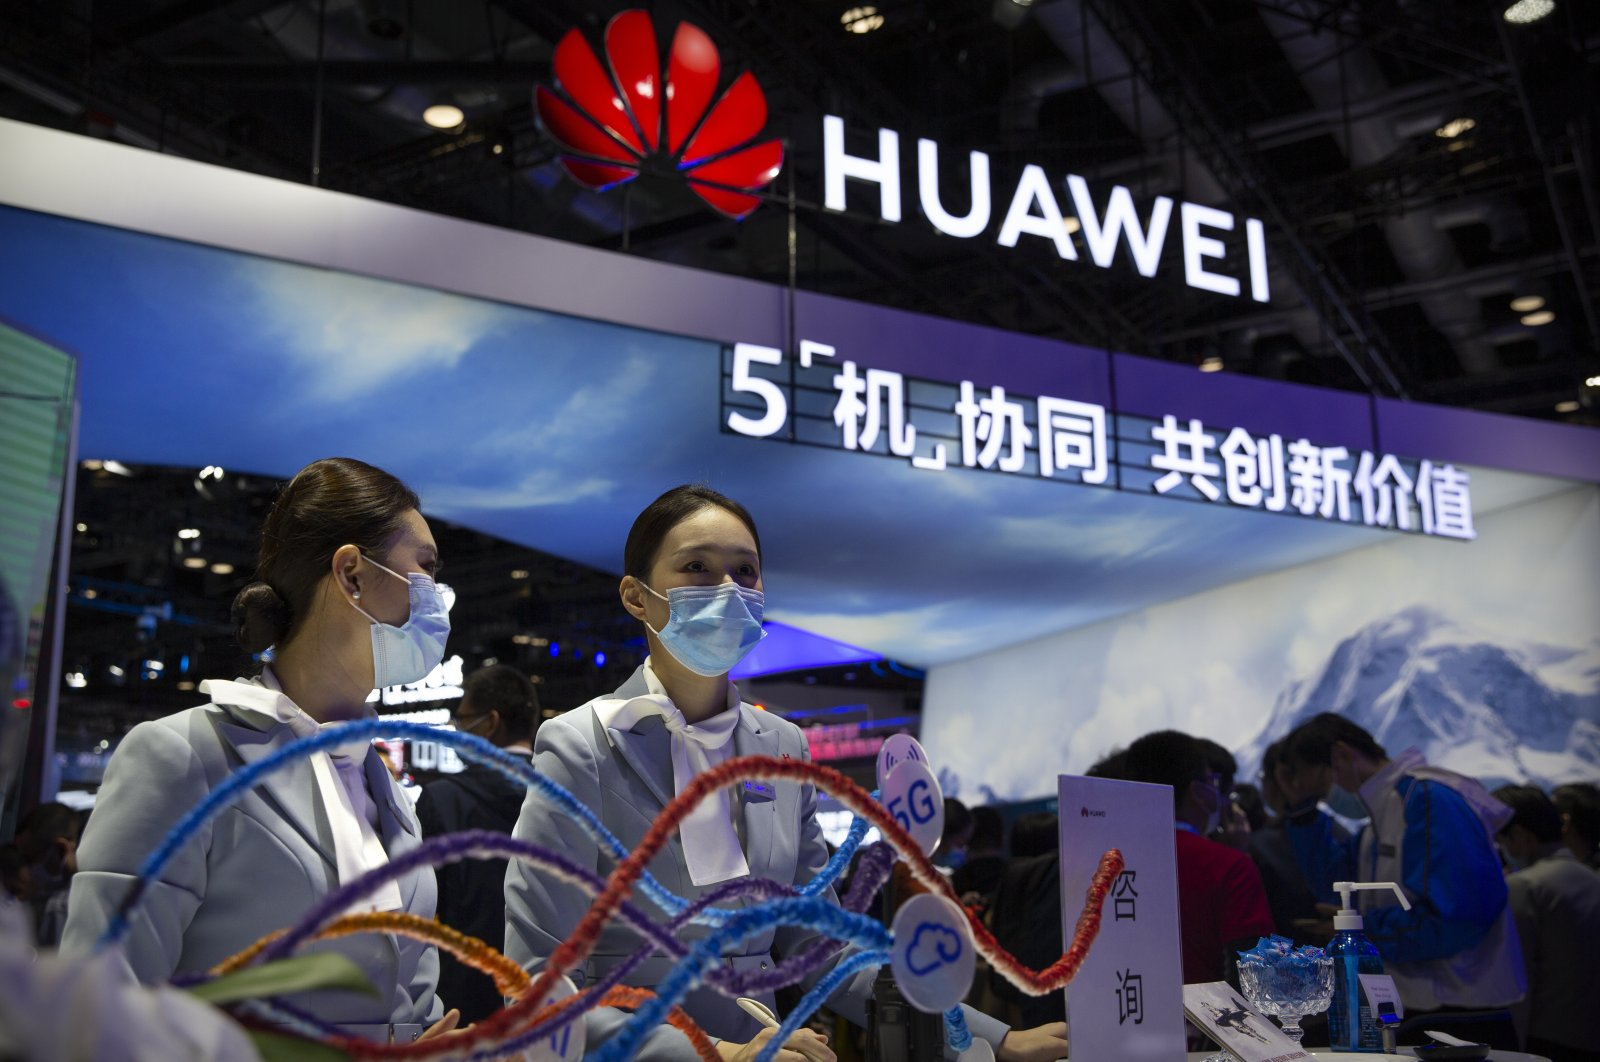 Staff members wearing face masks to protect against the coronavirus stand at a booth from Chinese technology firm Huawei at the PT Expo in Beijing, Oct. 14, 2020. (AP Photo)